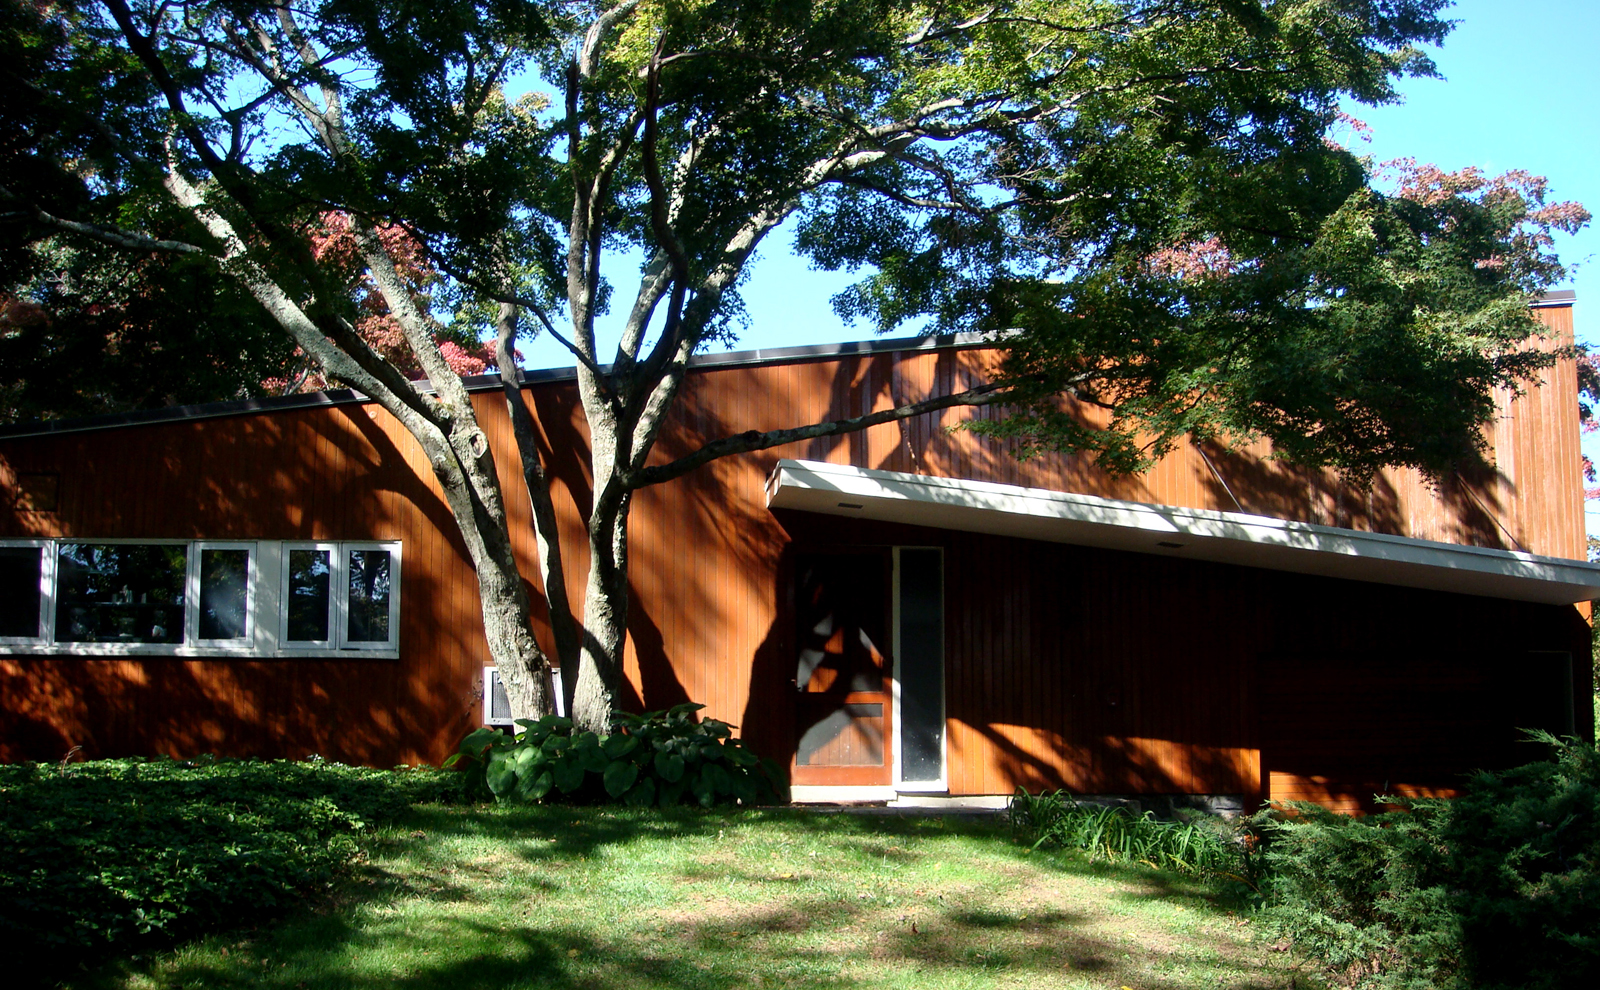 The rear facade of the house showing the slope of the butterfly roof. Photo by Diana Budds.